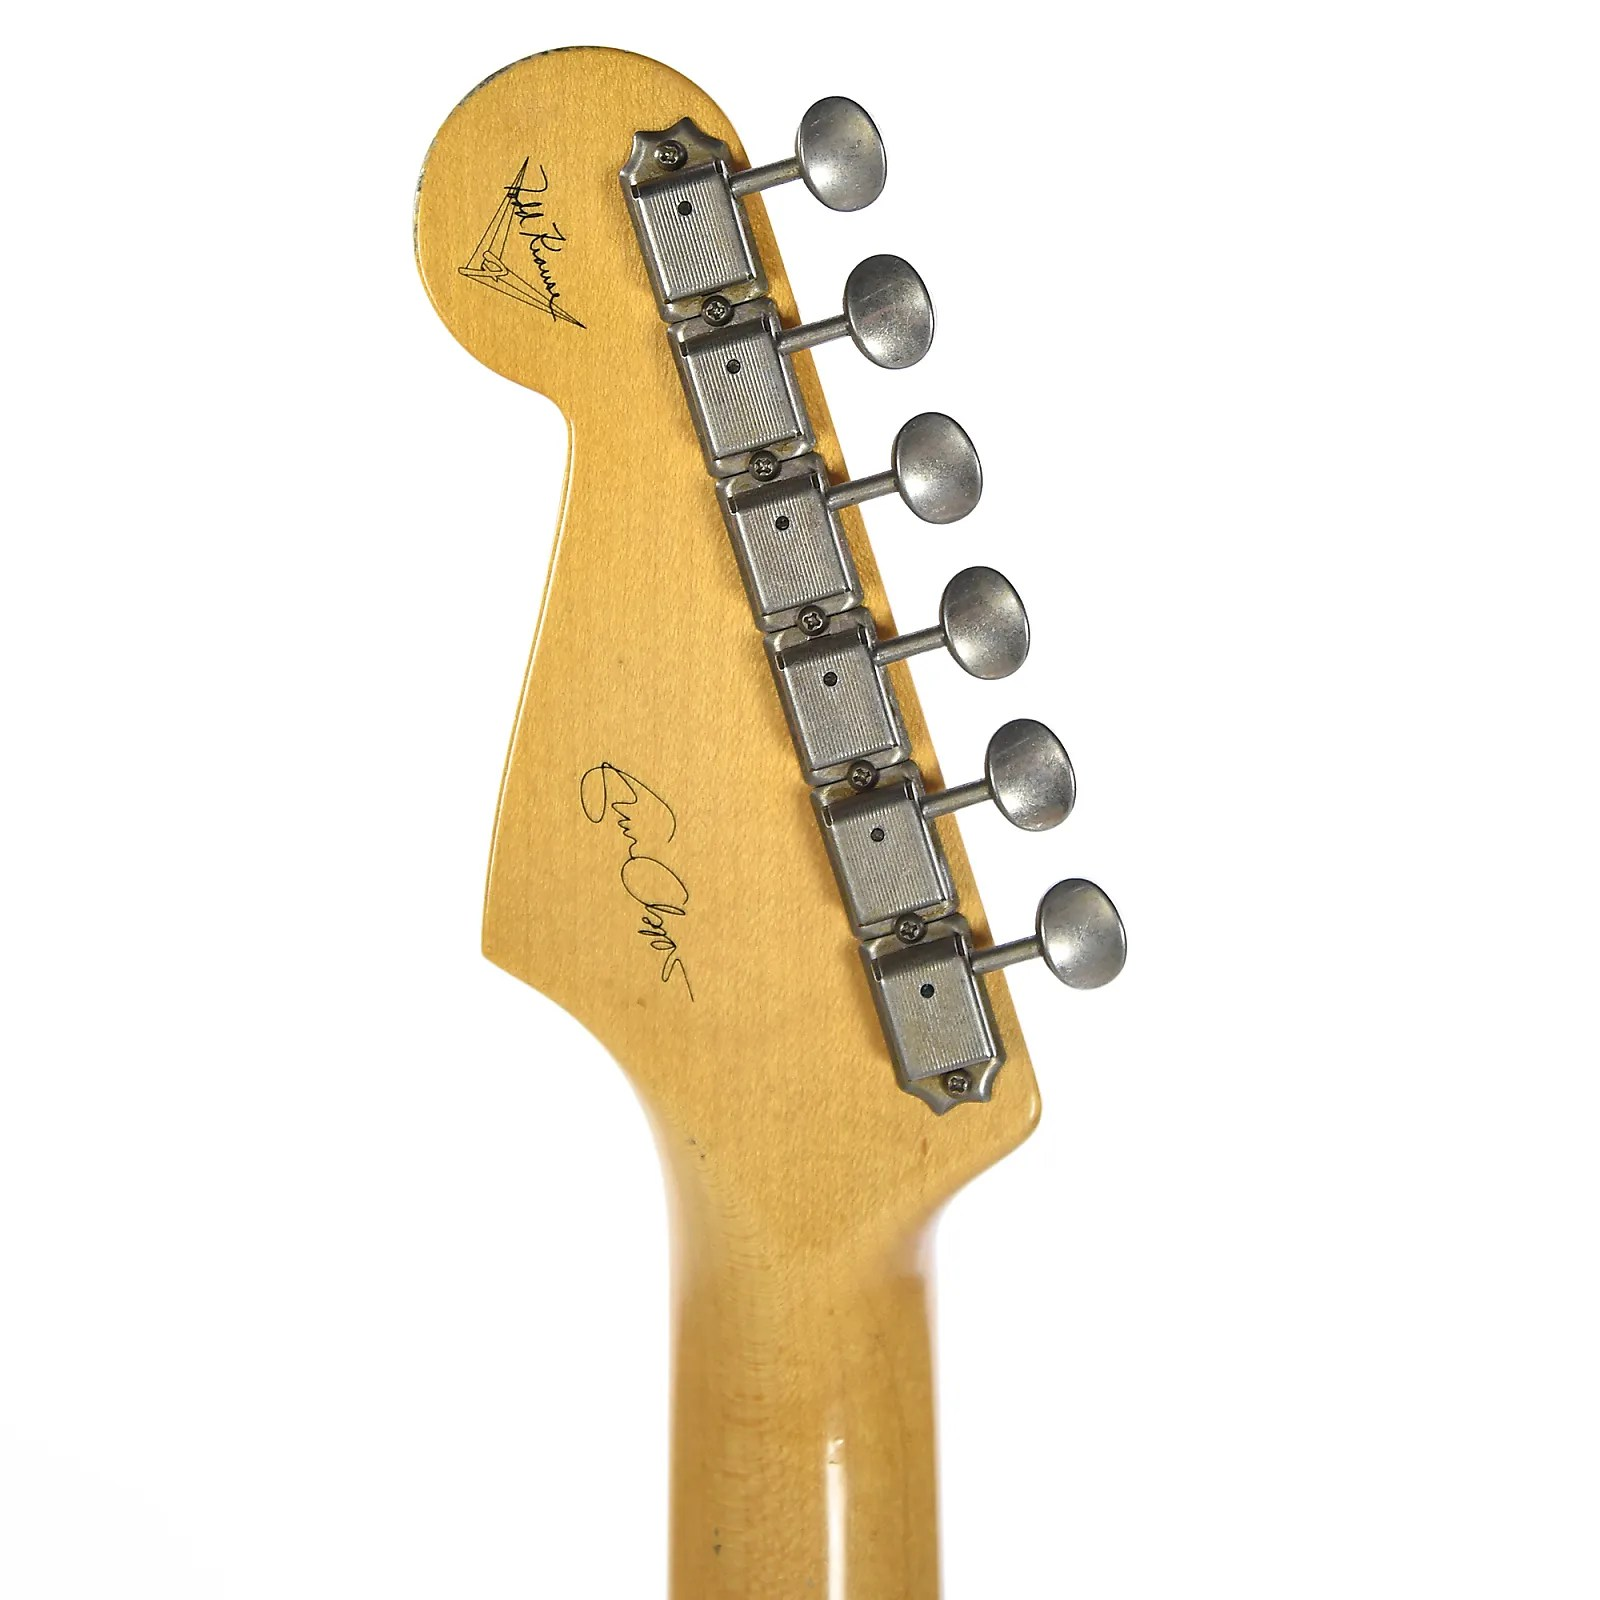 hight resolution of fender custom shop eric clapton stratocaster journeyman relic wht blonde masterbuilt by todd krause used